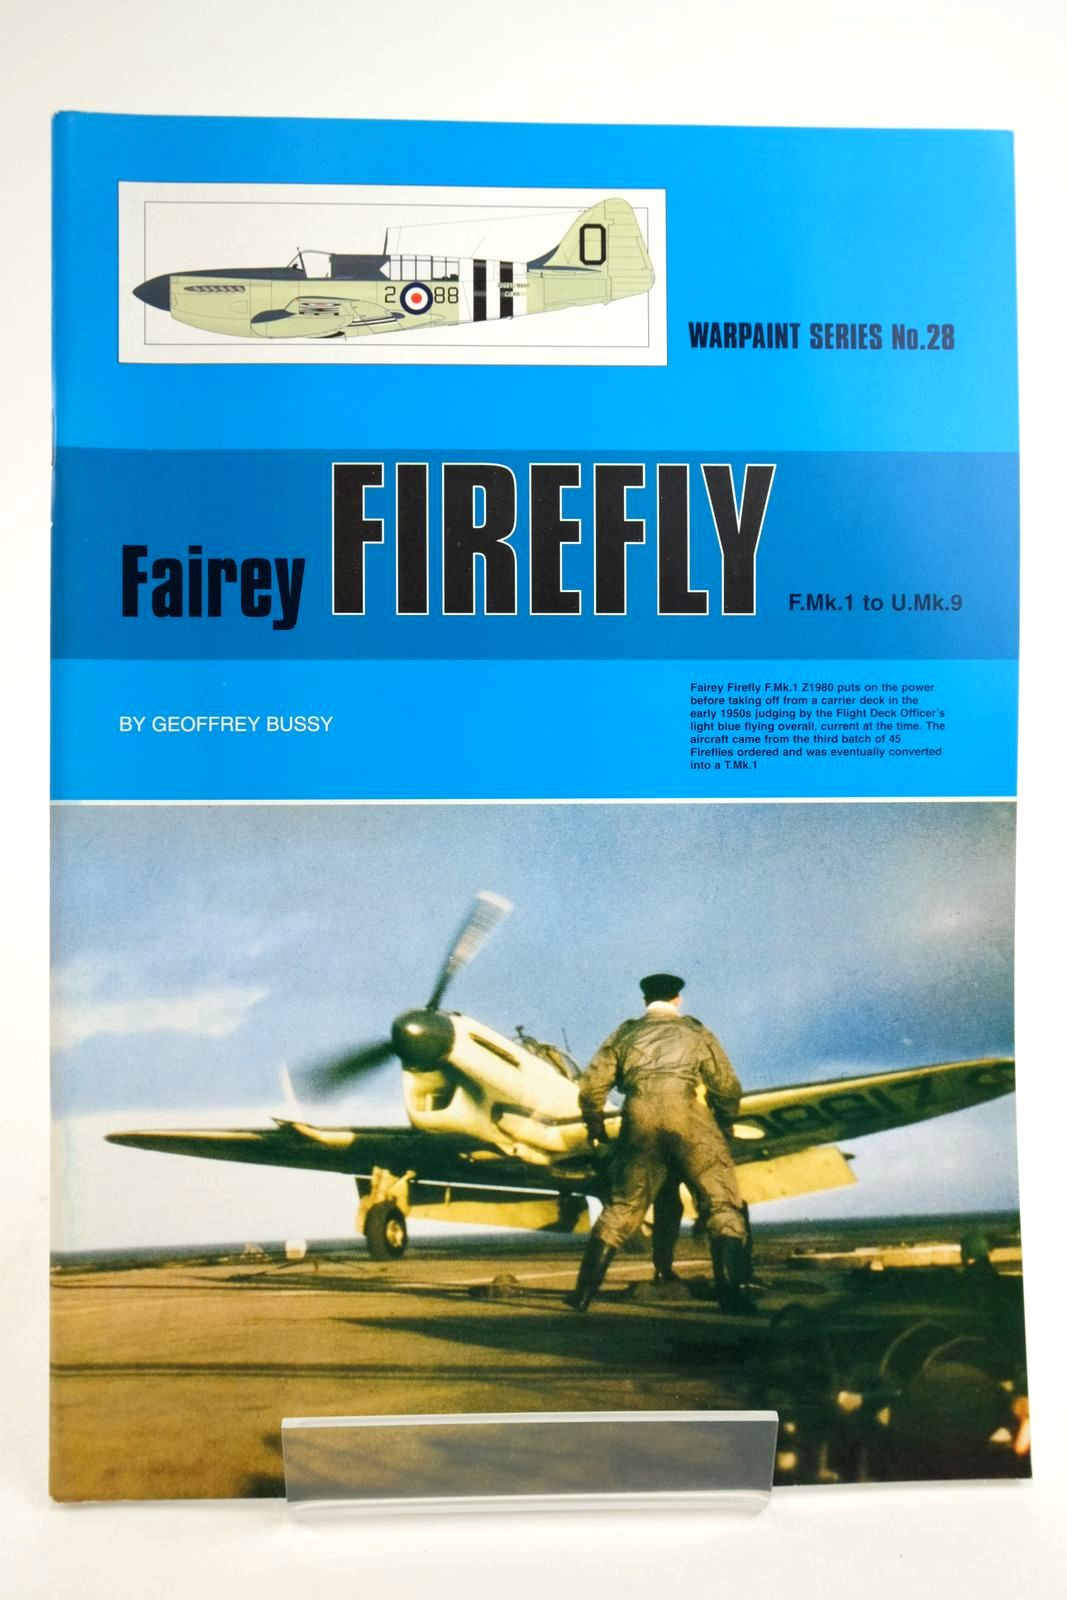 Photo of FAIREY FIREFLY F.MK.1 TO U.MK.9 written by Bussy, Geoffrey published by Hall Park Books Ltd. (STOCK CODE: 2135107)  for sale by Stella & Rose's Books